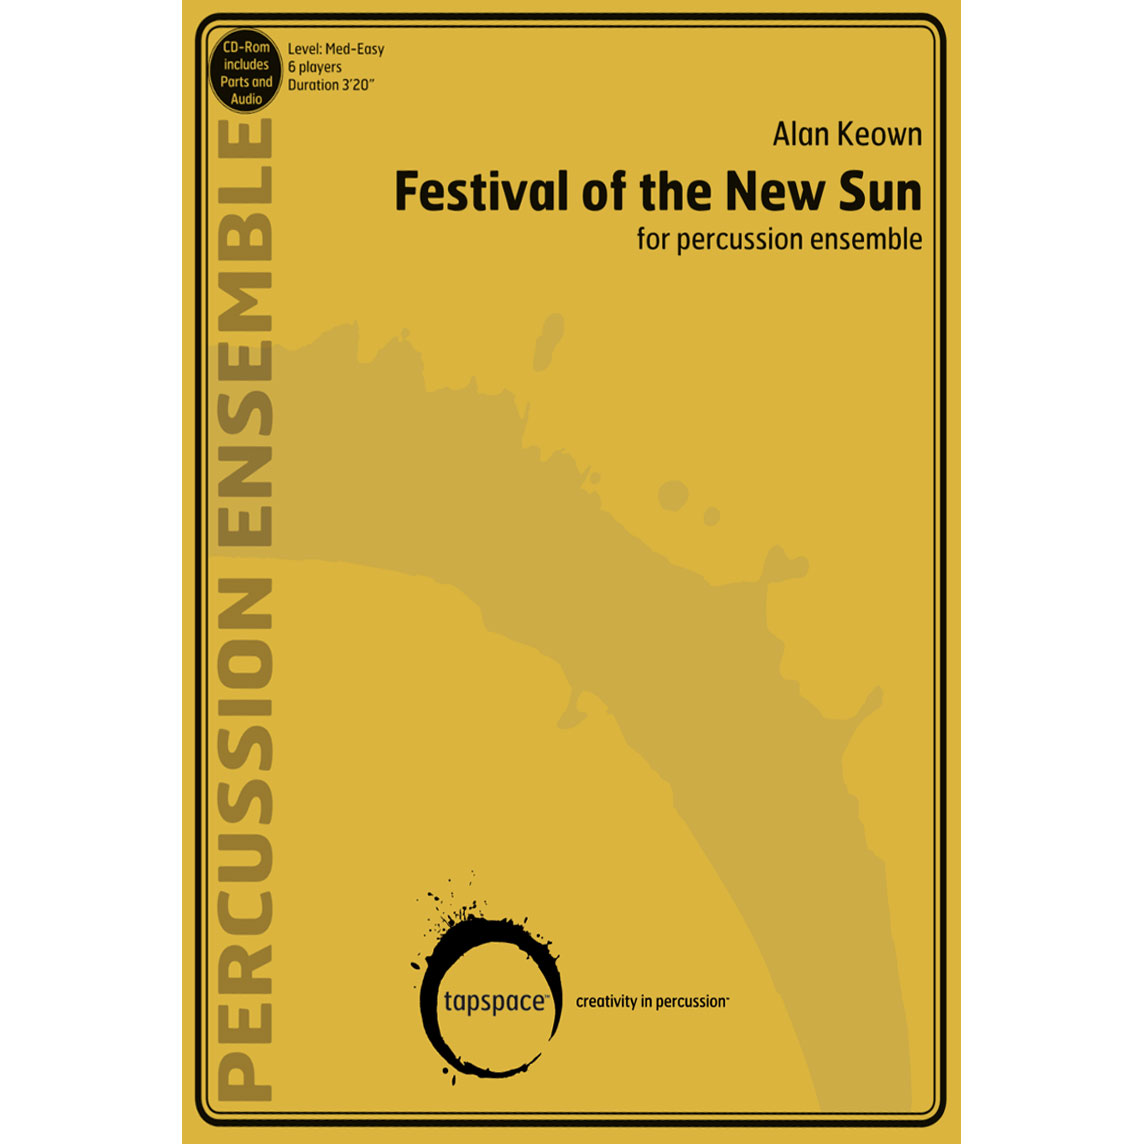 Festival of the New Sun by Alan Keown